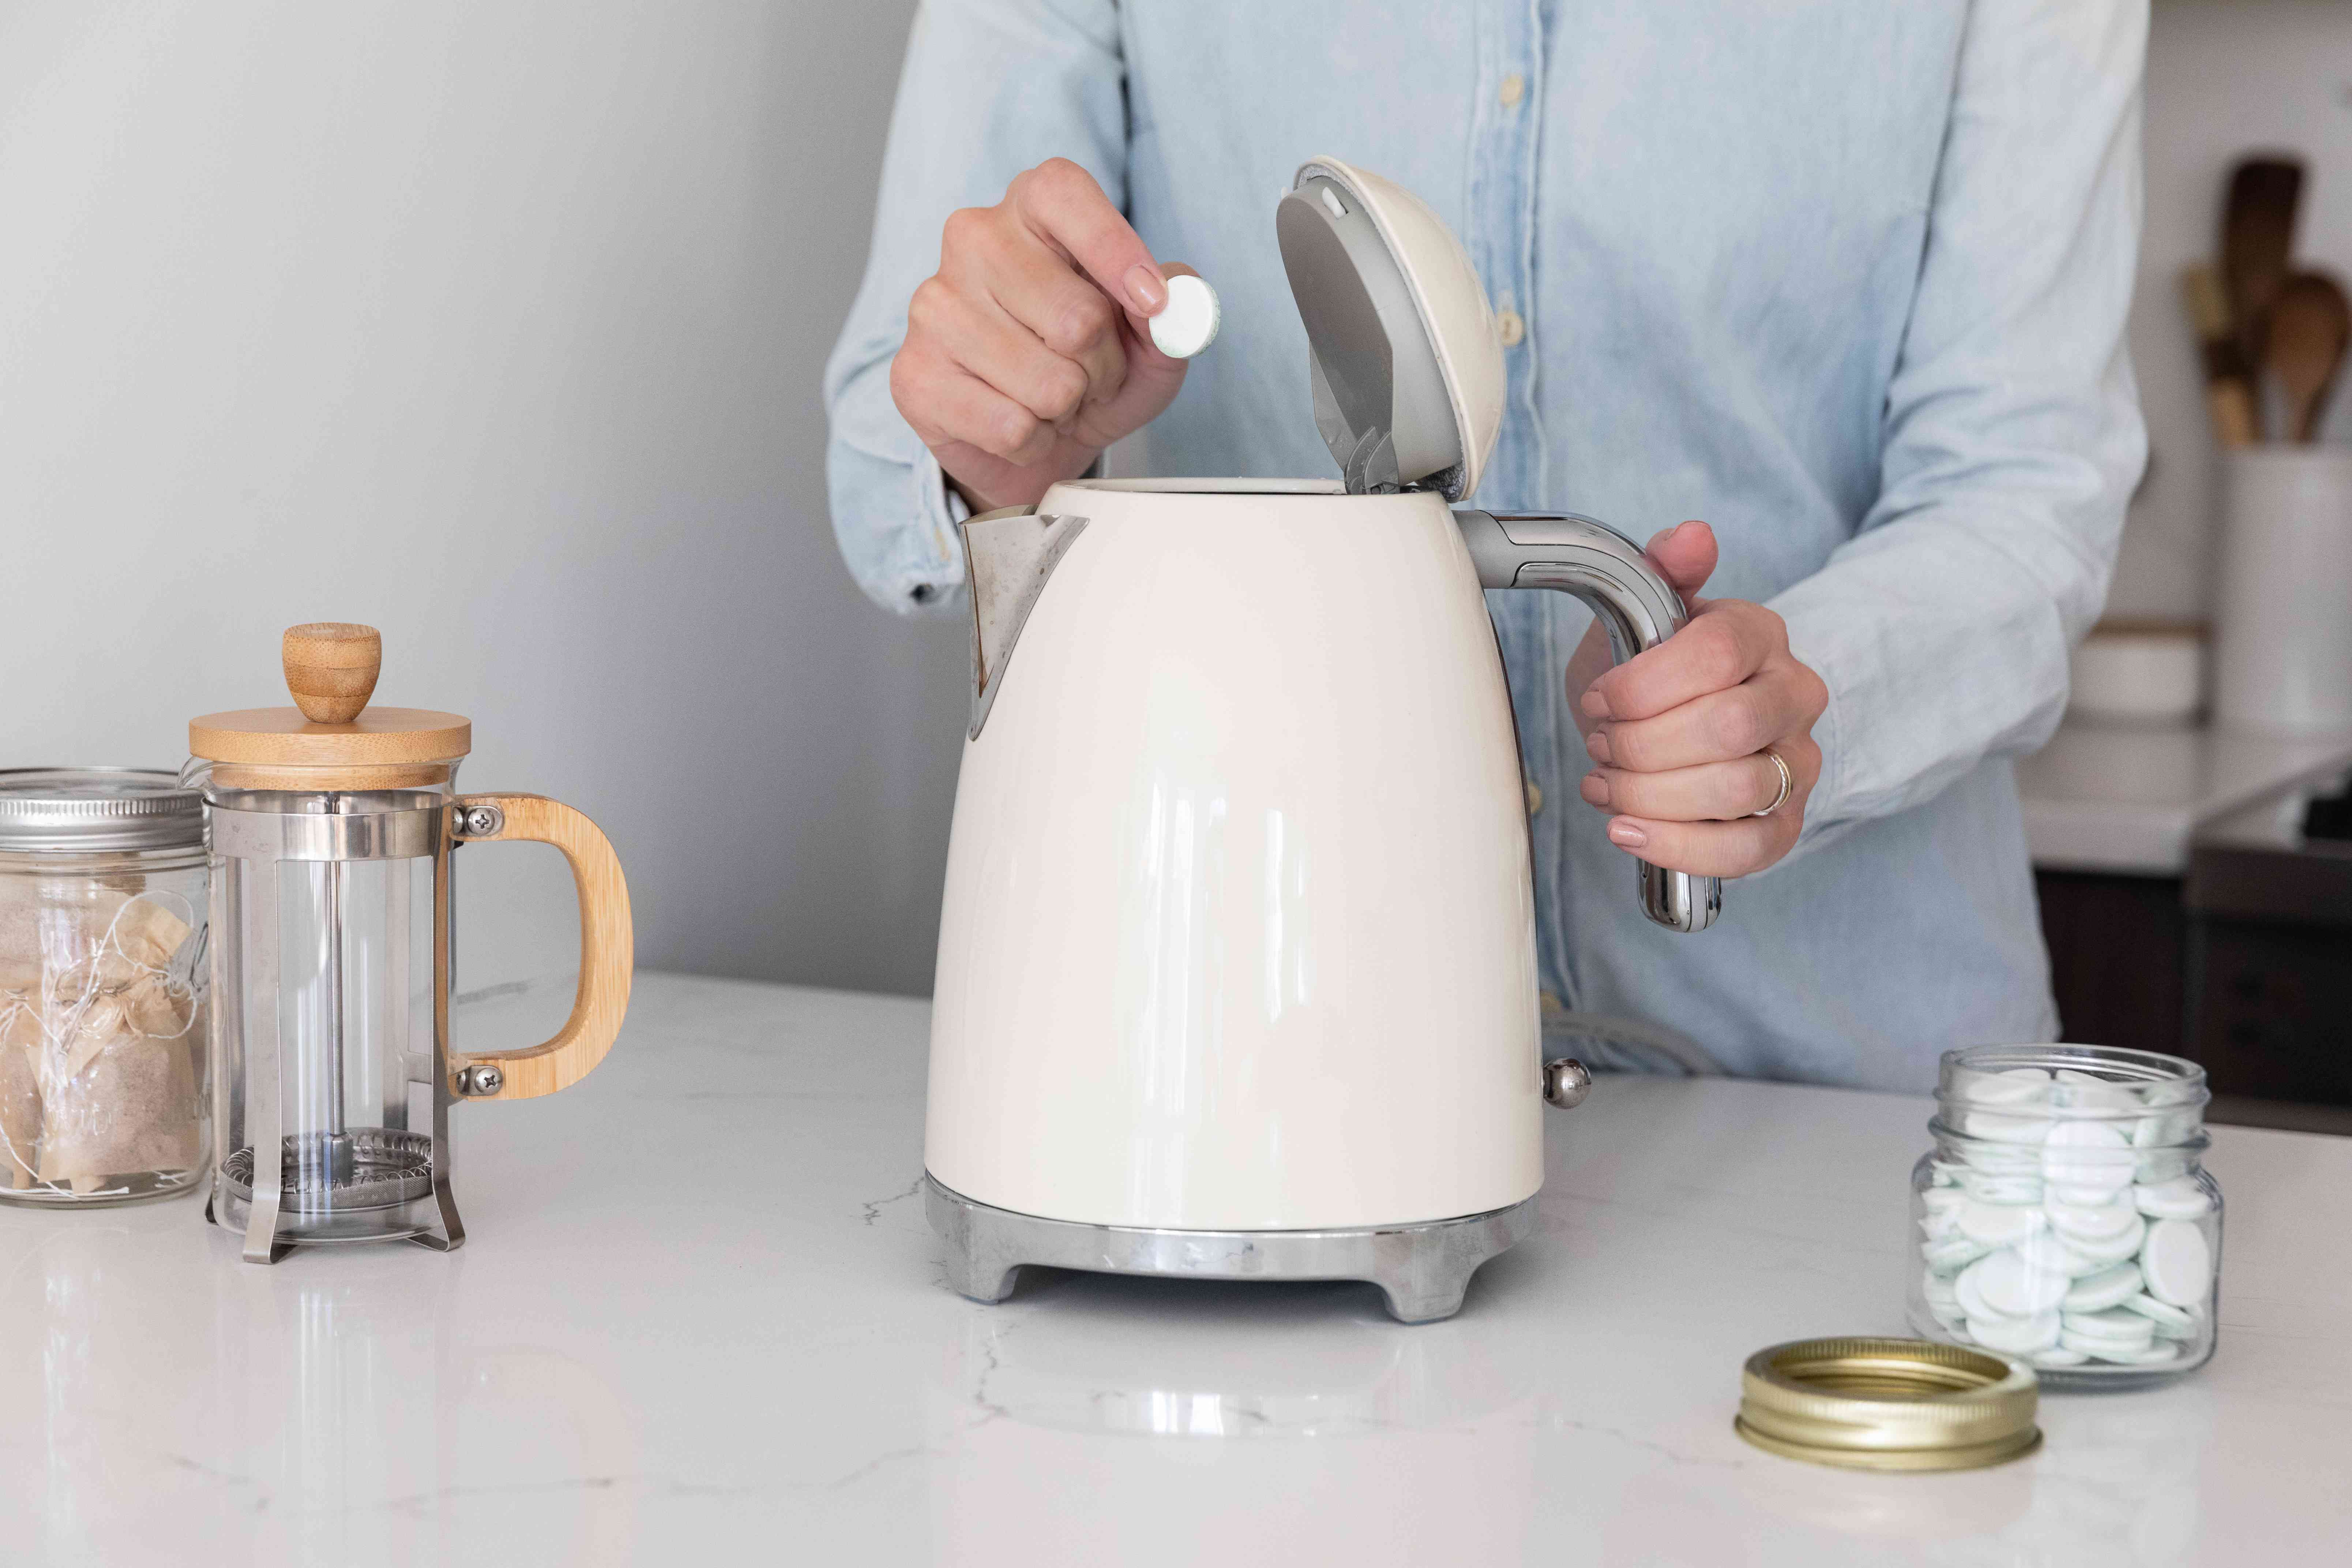 removing mineral deposits from a water kettle